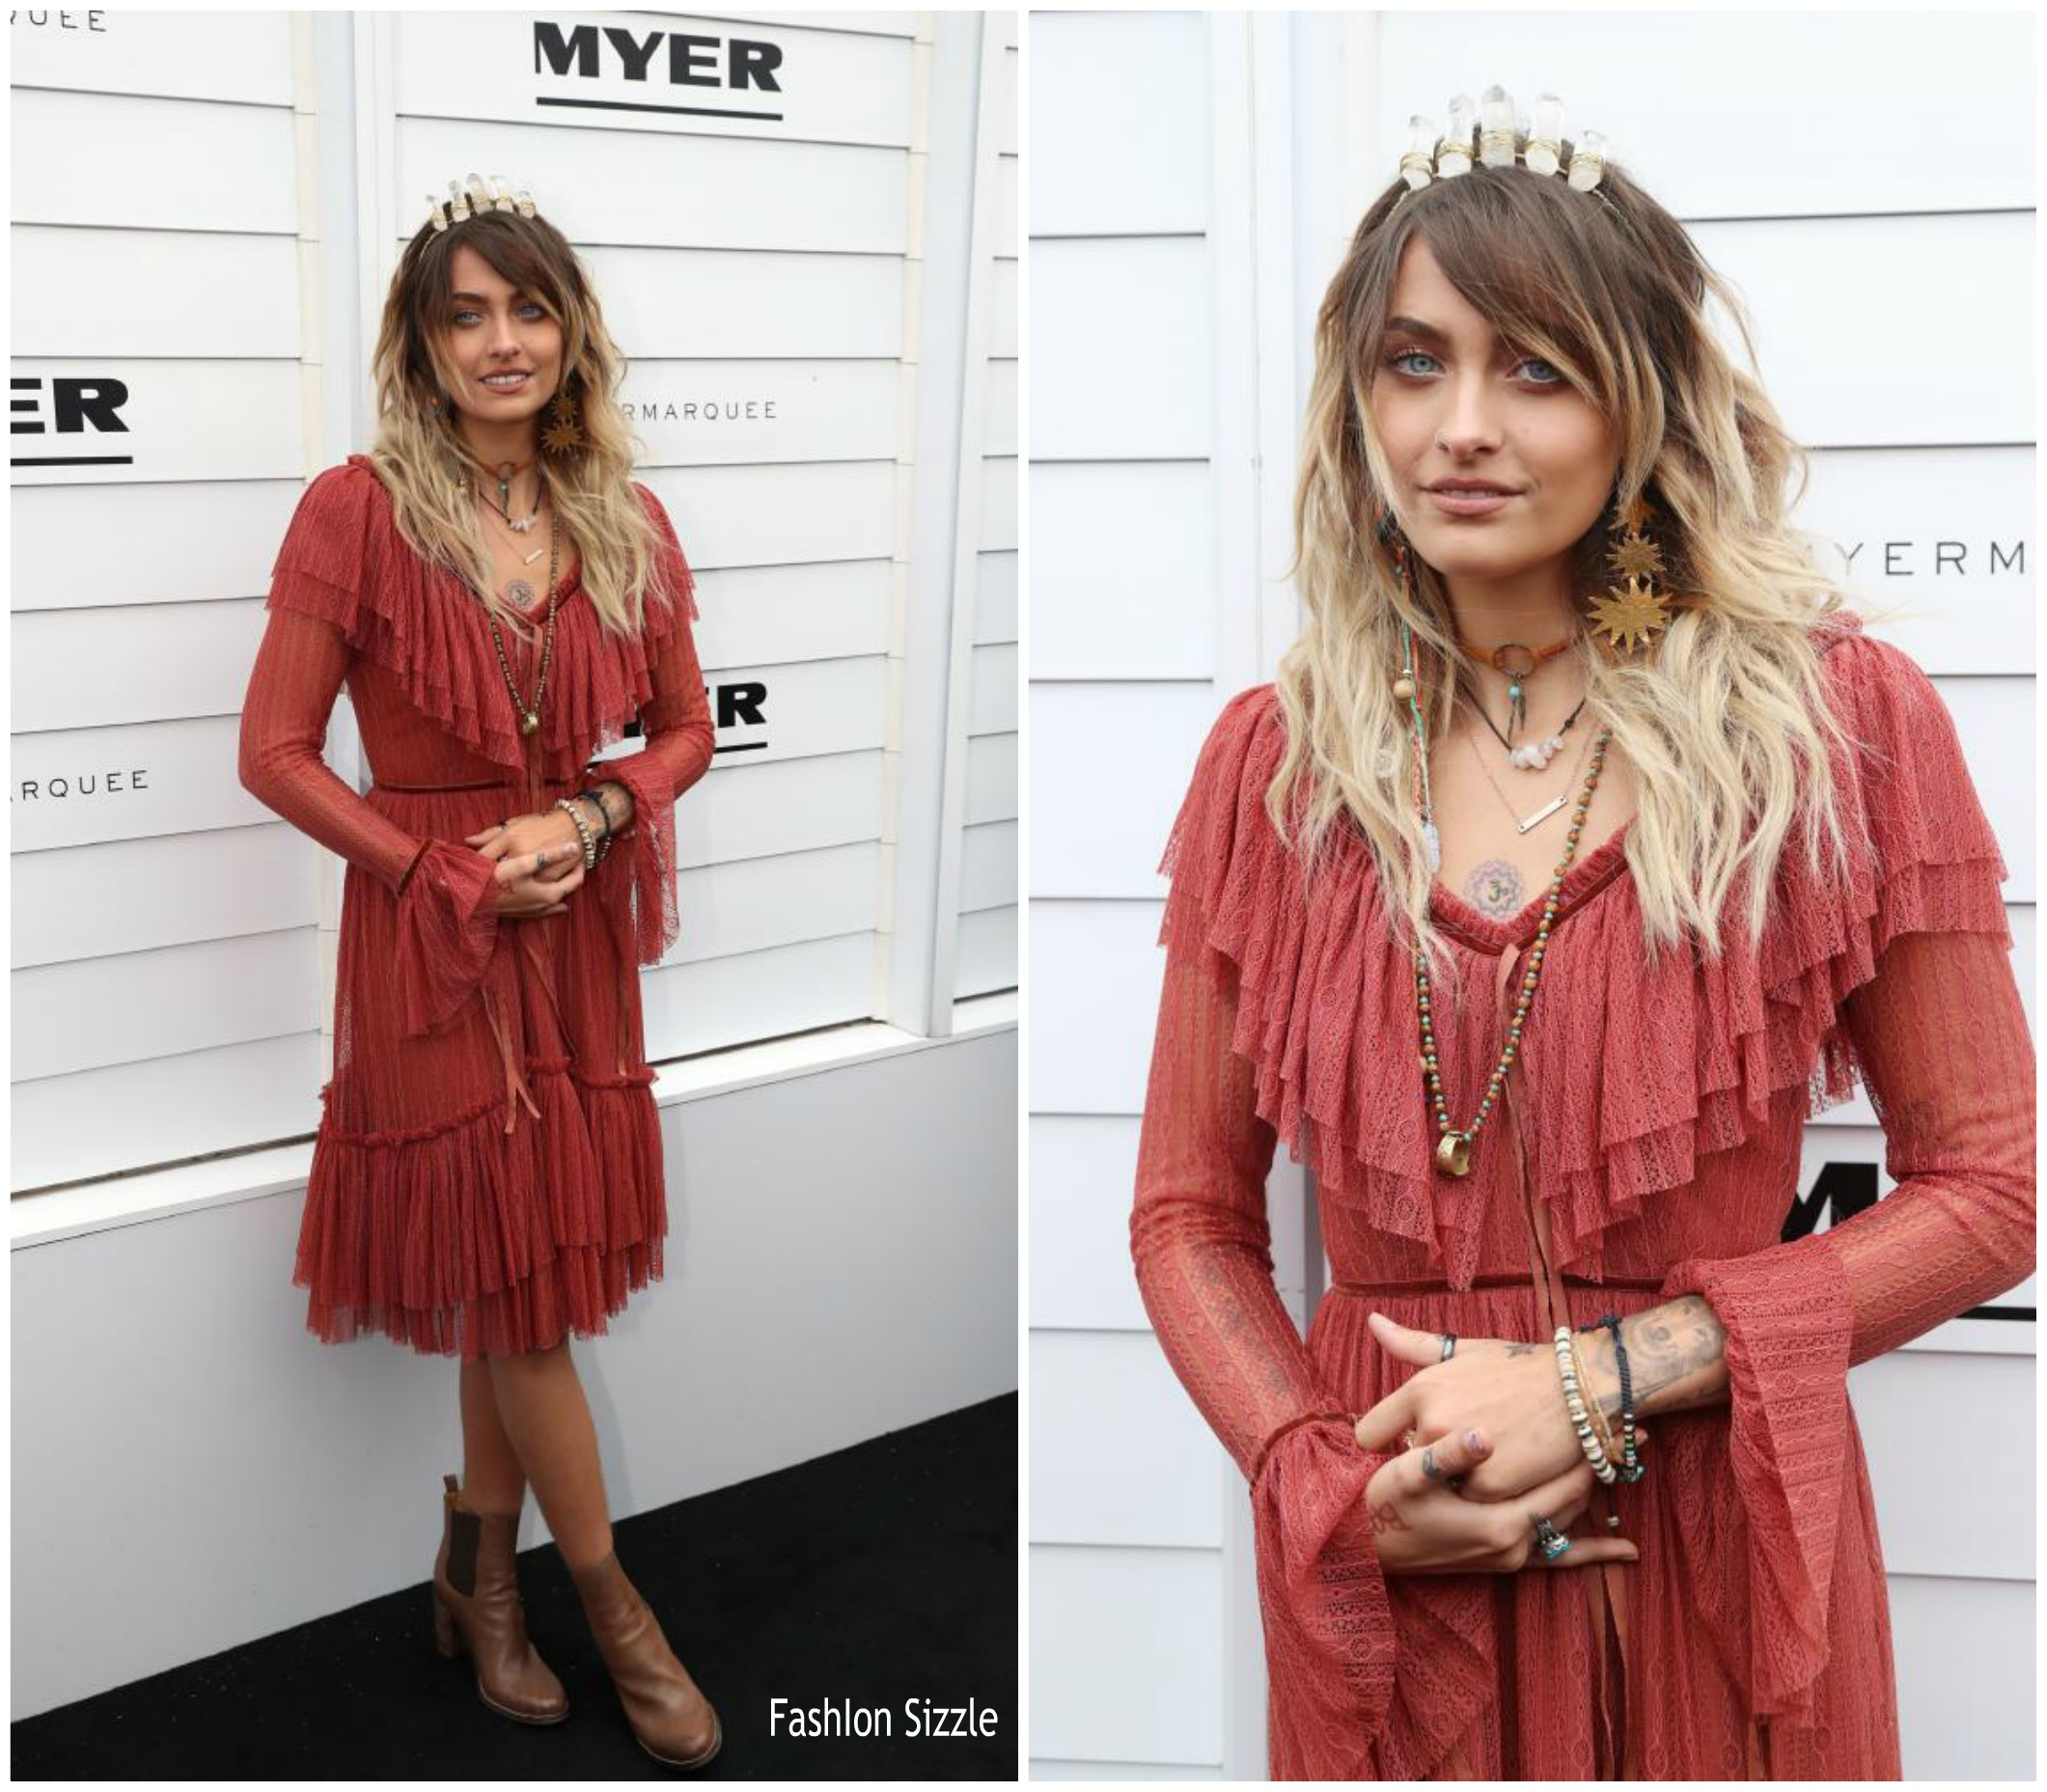 paris-jackson-in-morrison-emirates-melbourne-cup-day